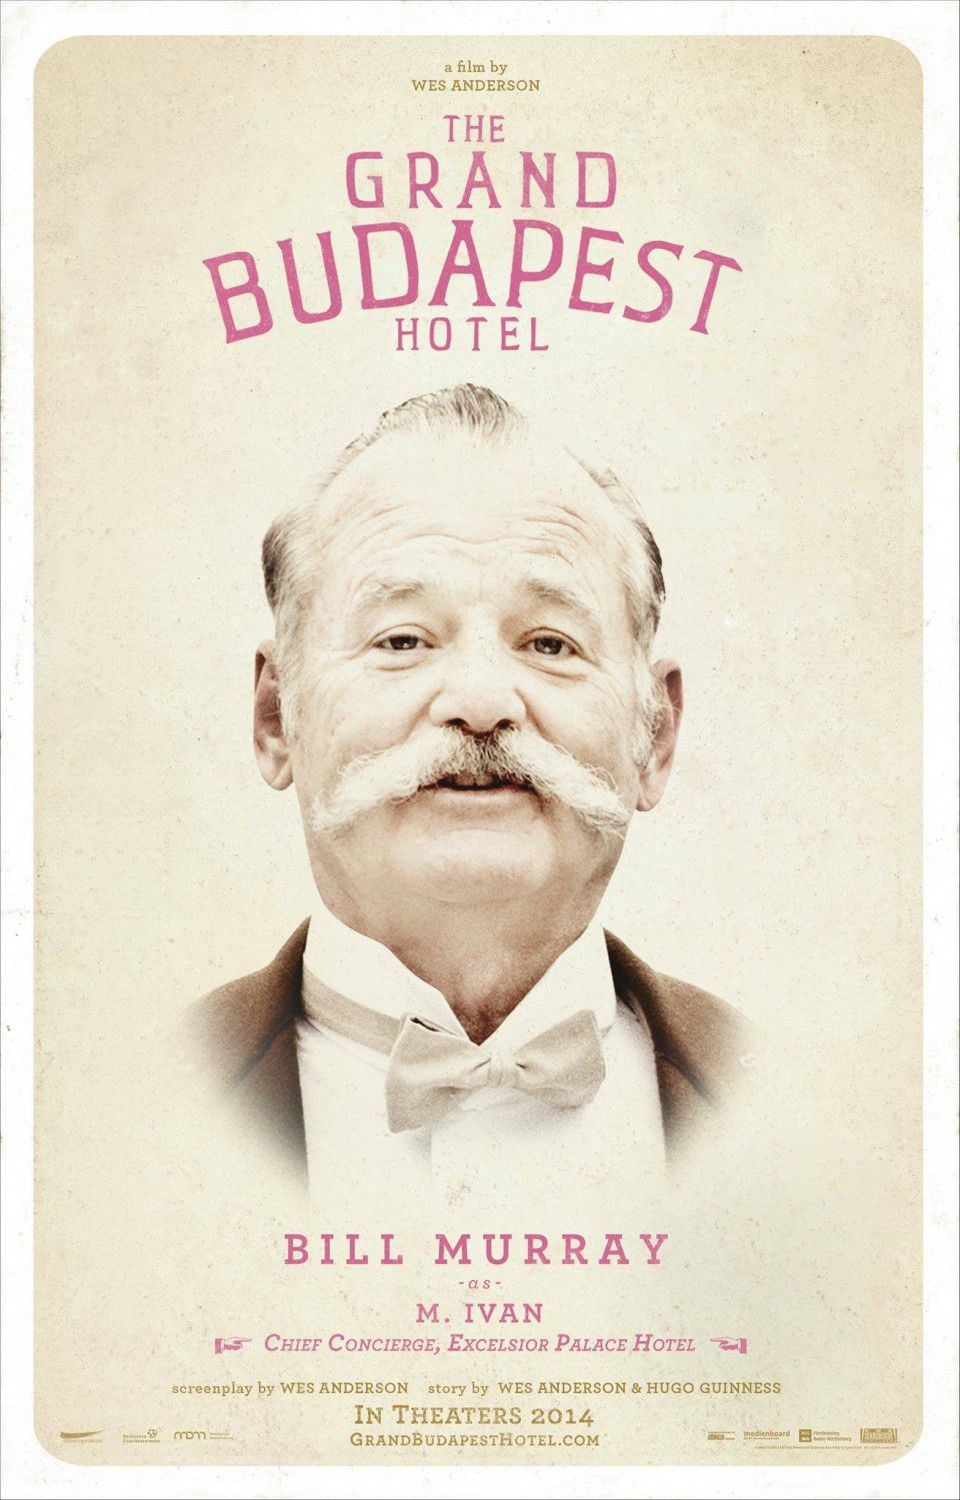 M. Ivan (Bill Murray)